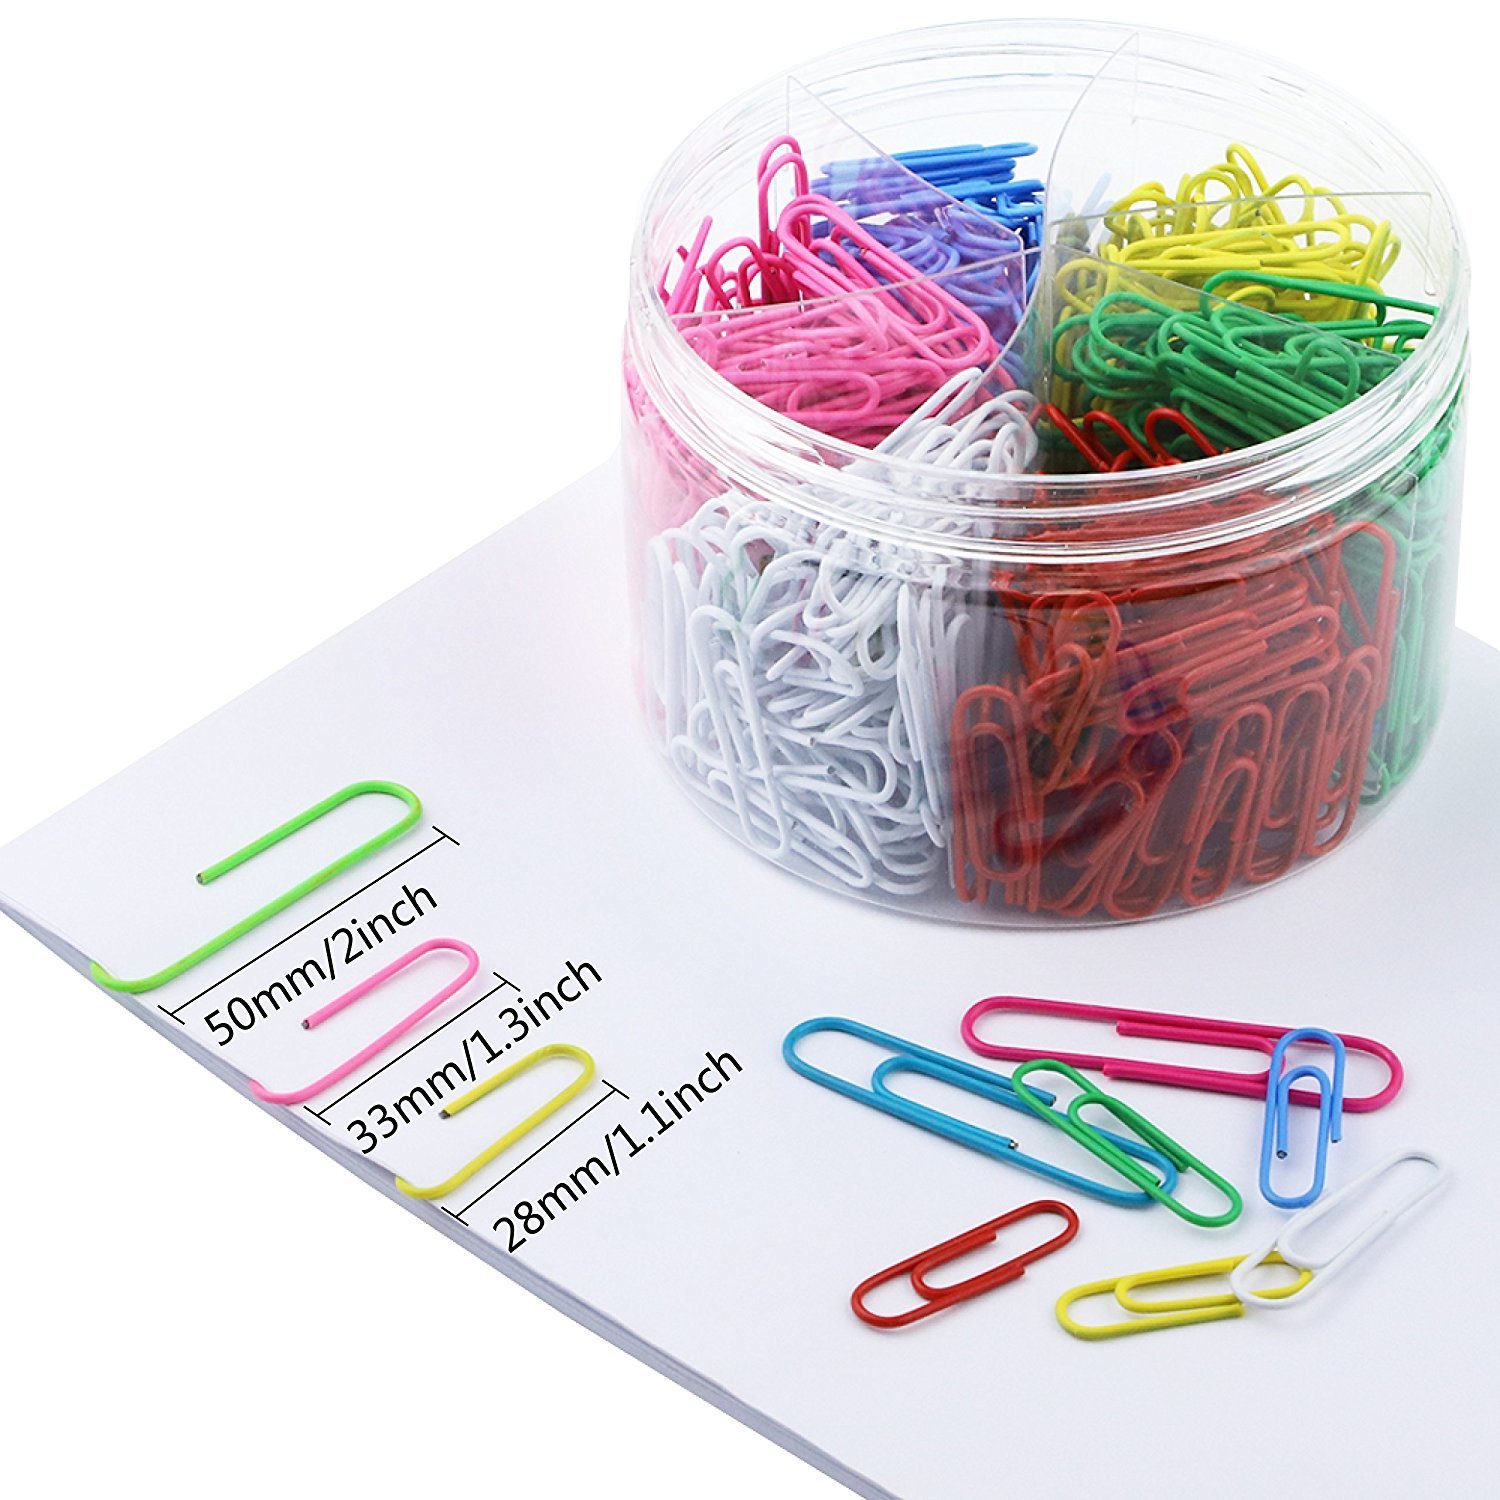 650 Pieces Colored Paperclips, Jumbo 50mm, Medium 33mm & Small 28mm, Assorted Office Clips for School, Work or Organizing (500 + 150 Bonus)